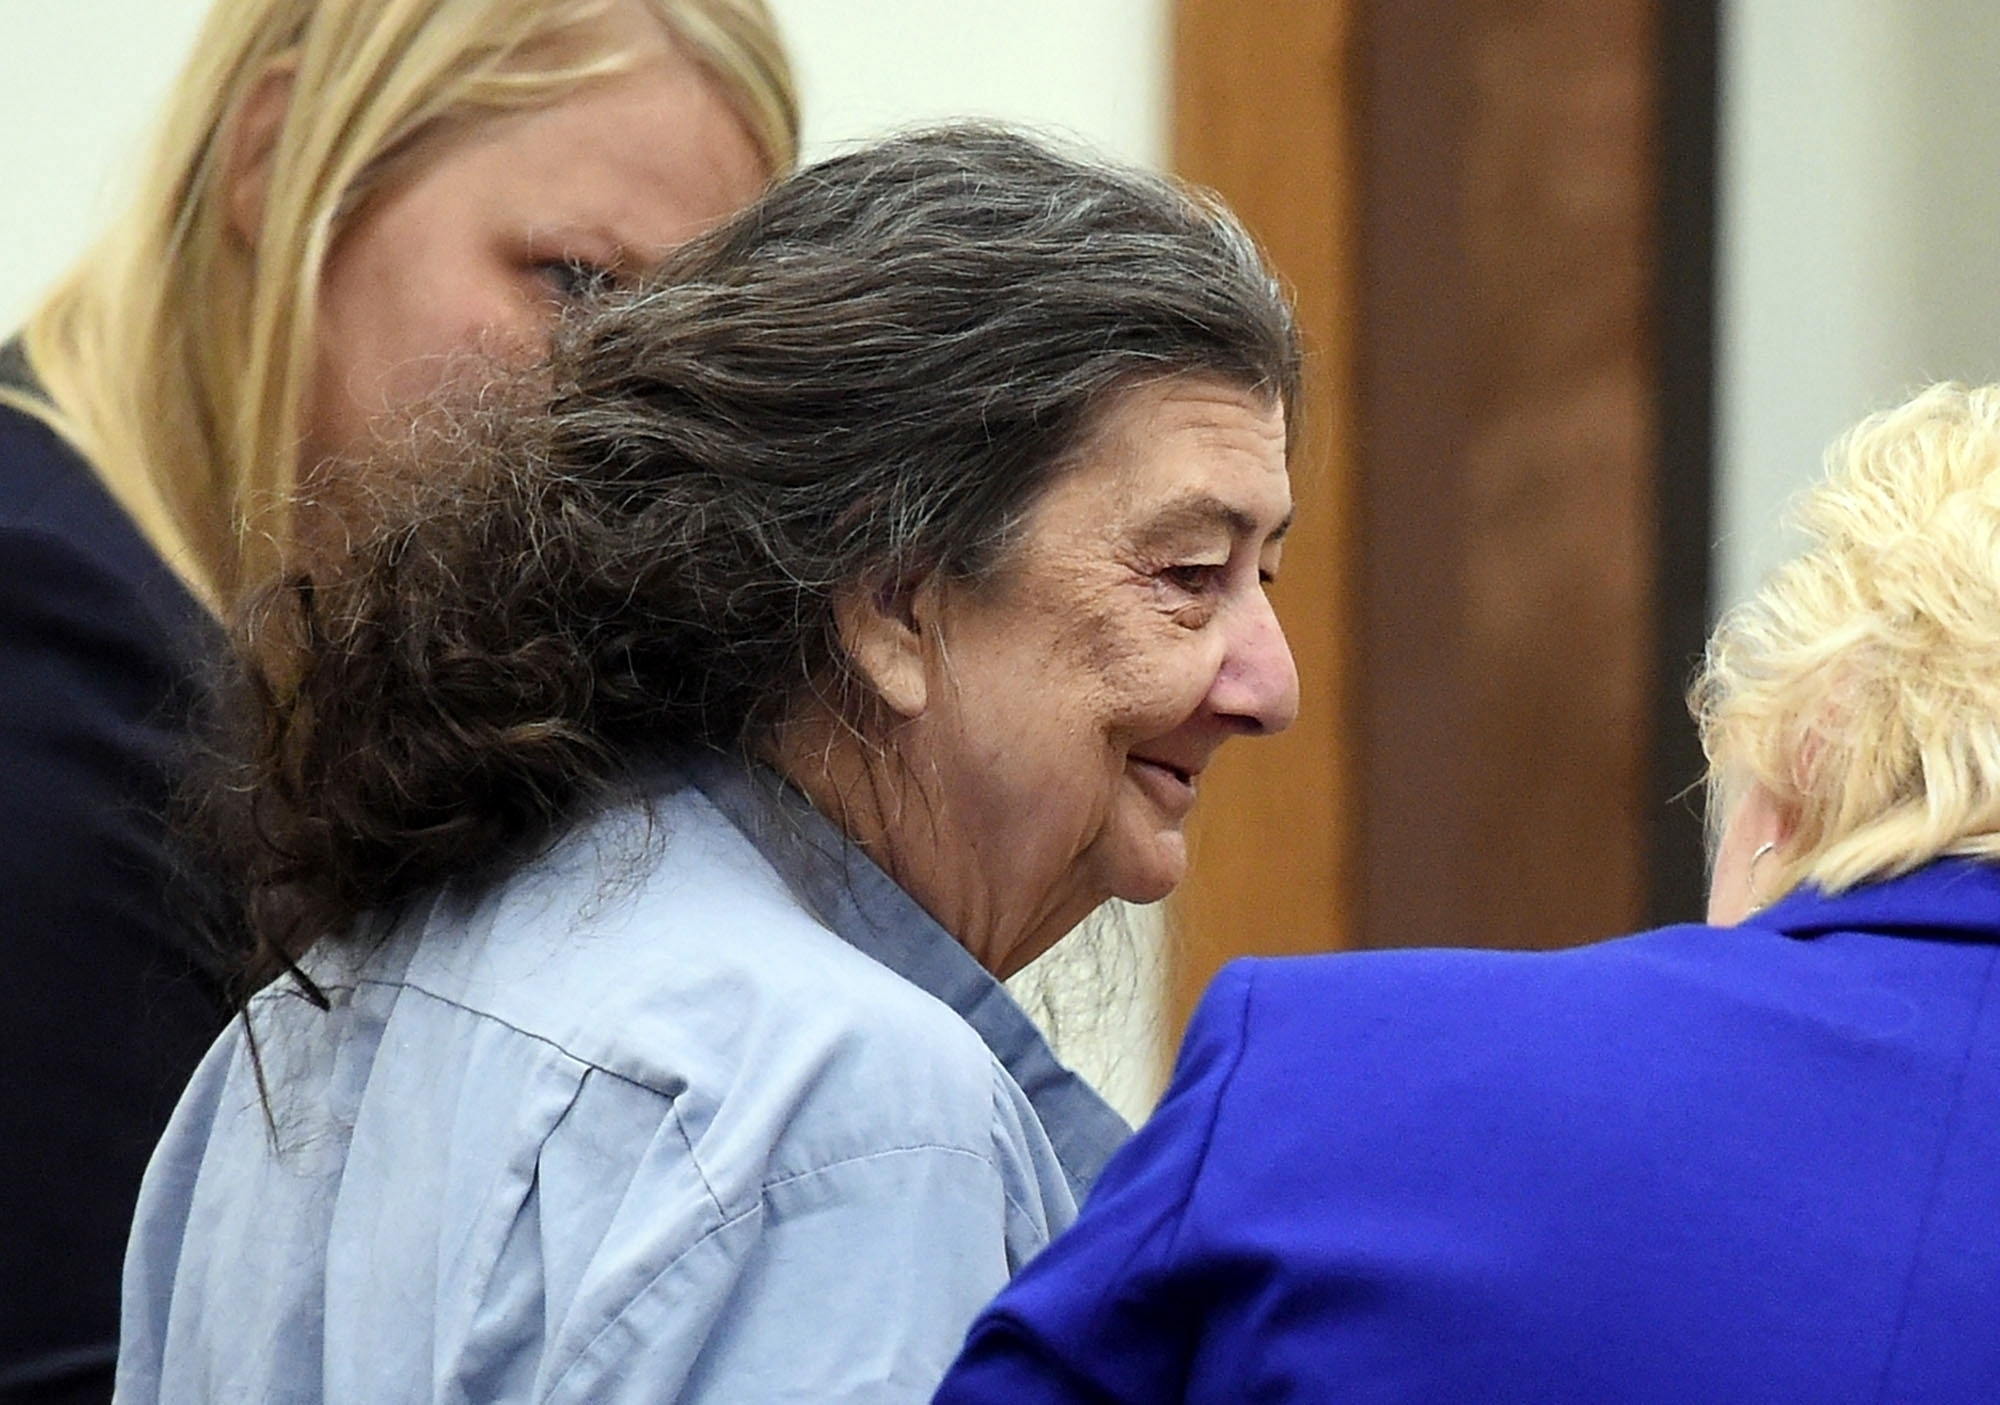 Woman cleared of murder after 35 years in prison gets $3M